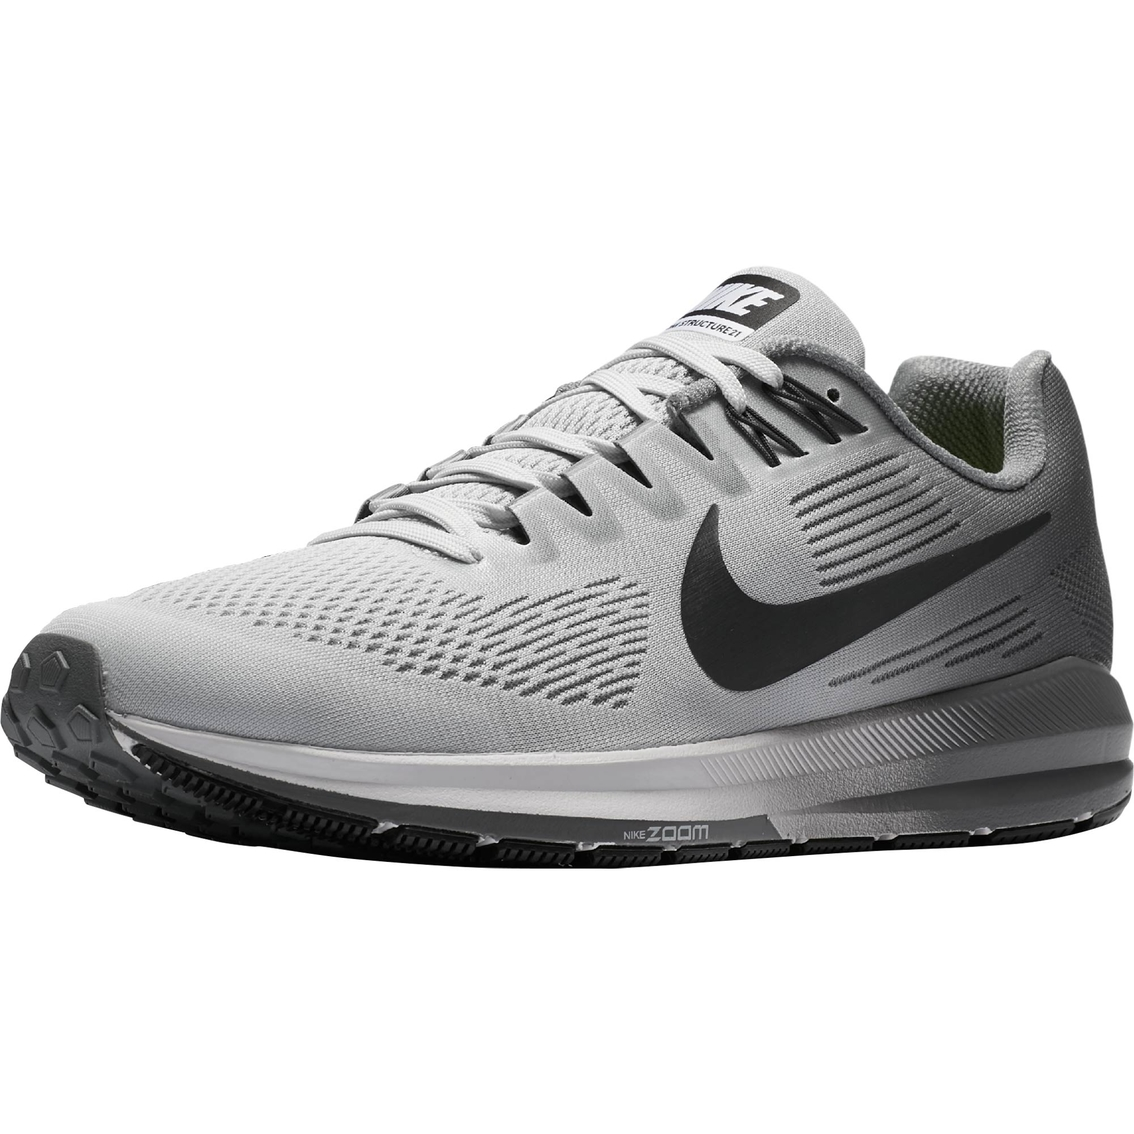 sneakers for cheap 8db53 3a74a Nike Men's Air Zoom Structure 21 Running Shoes | Running ...